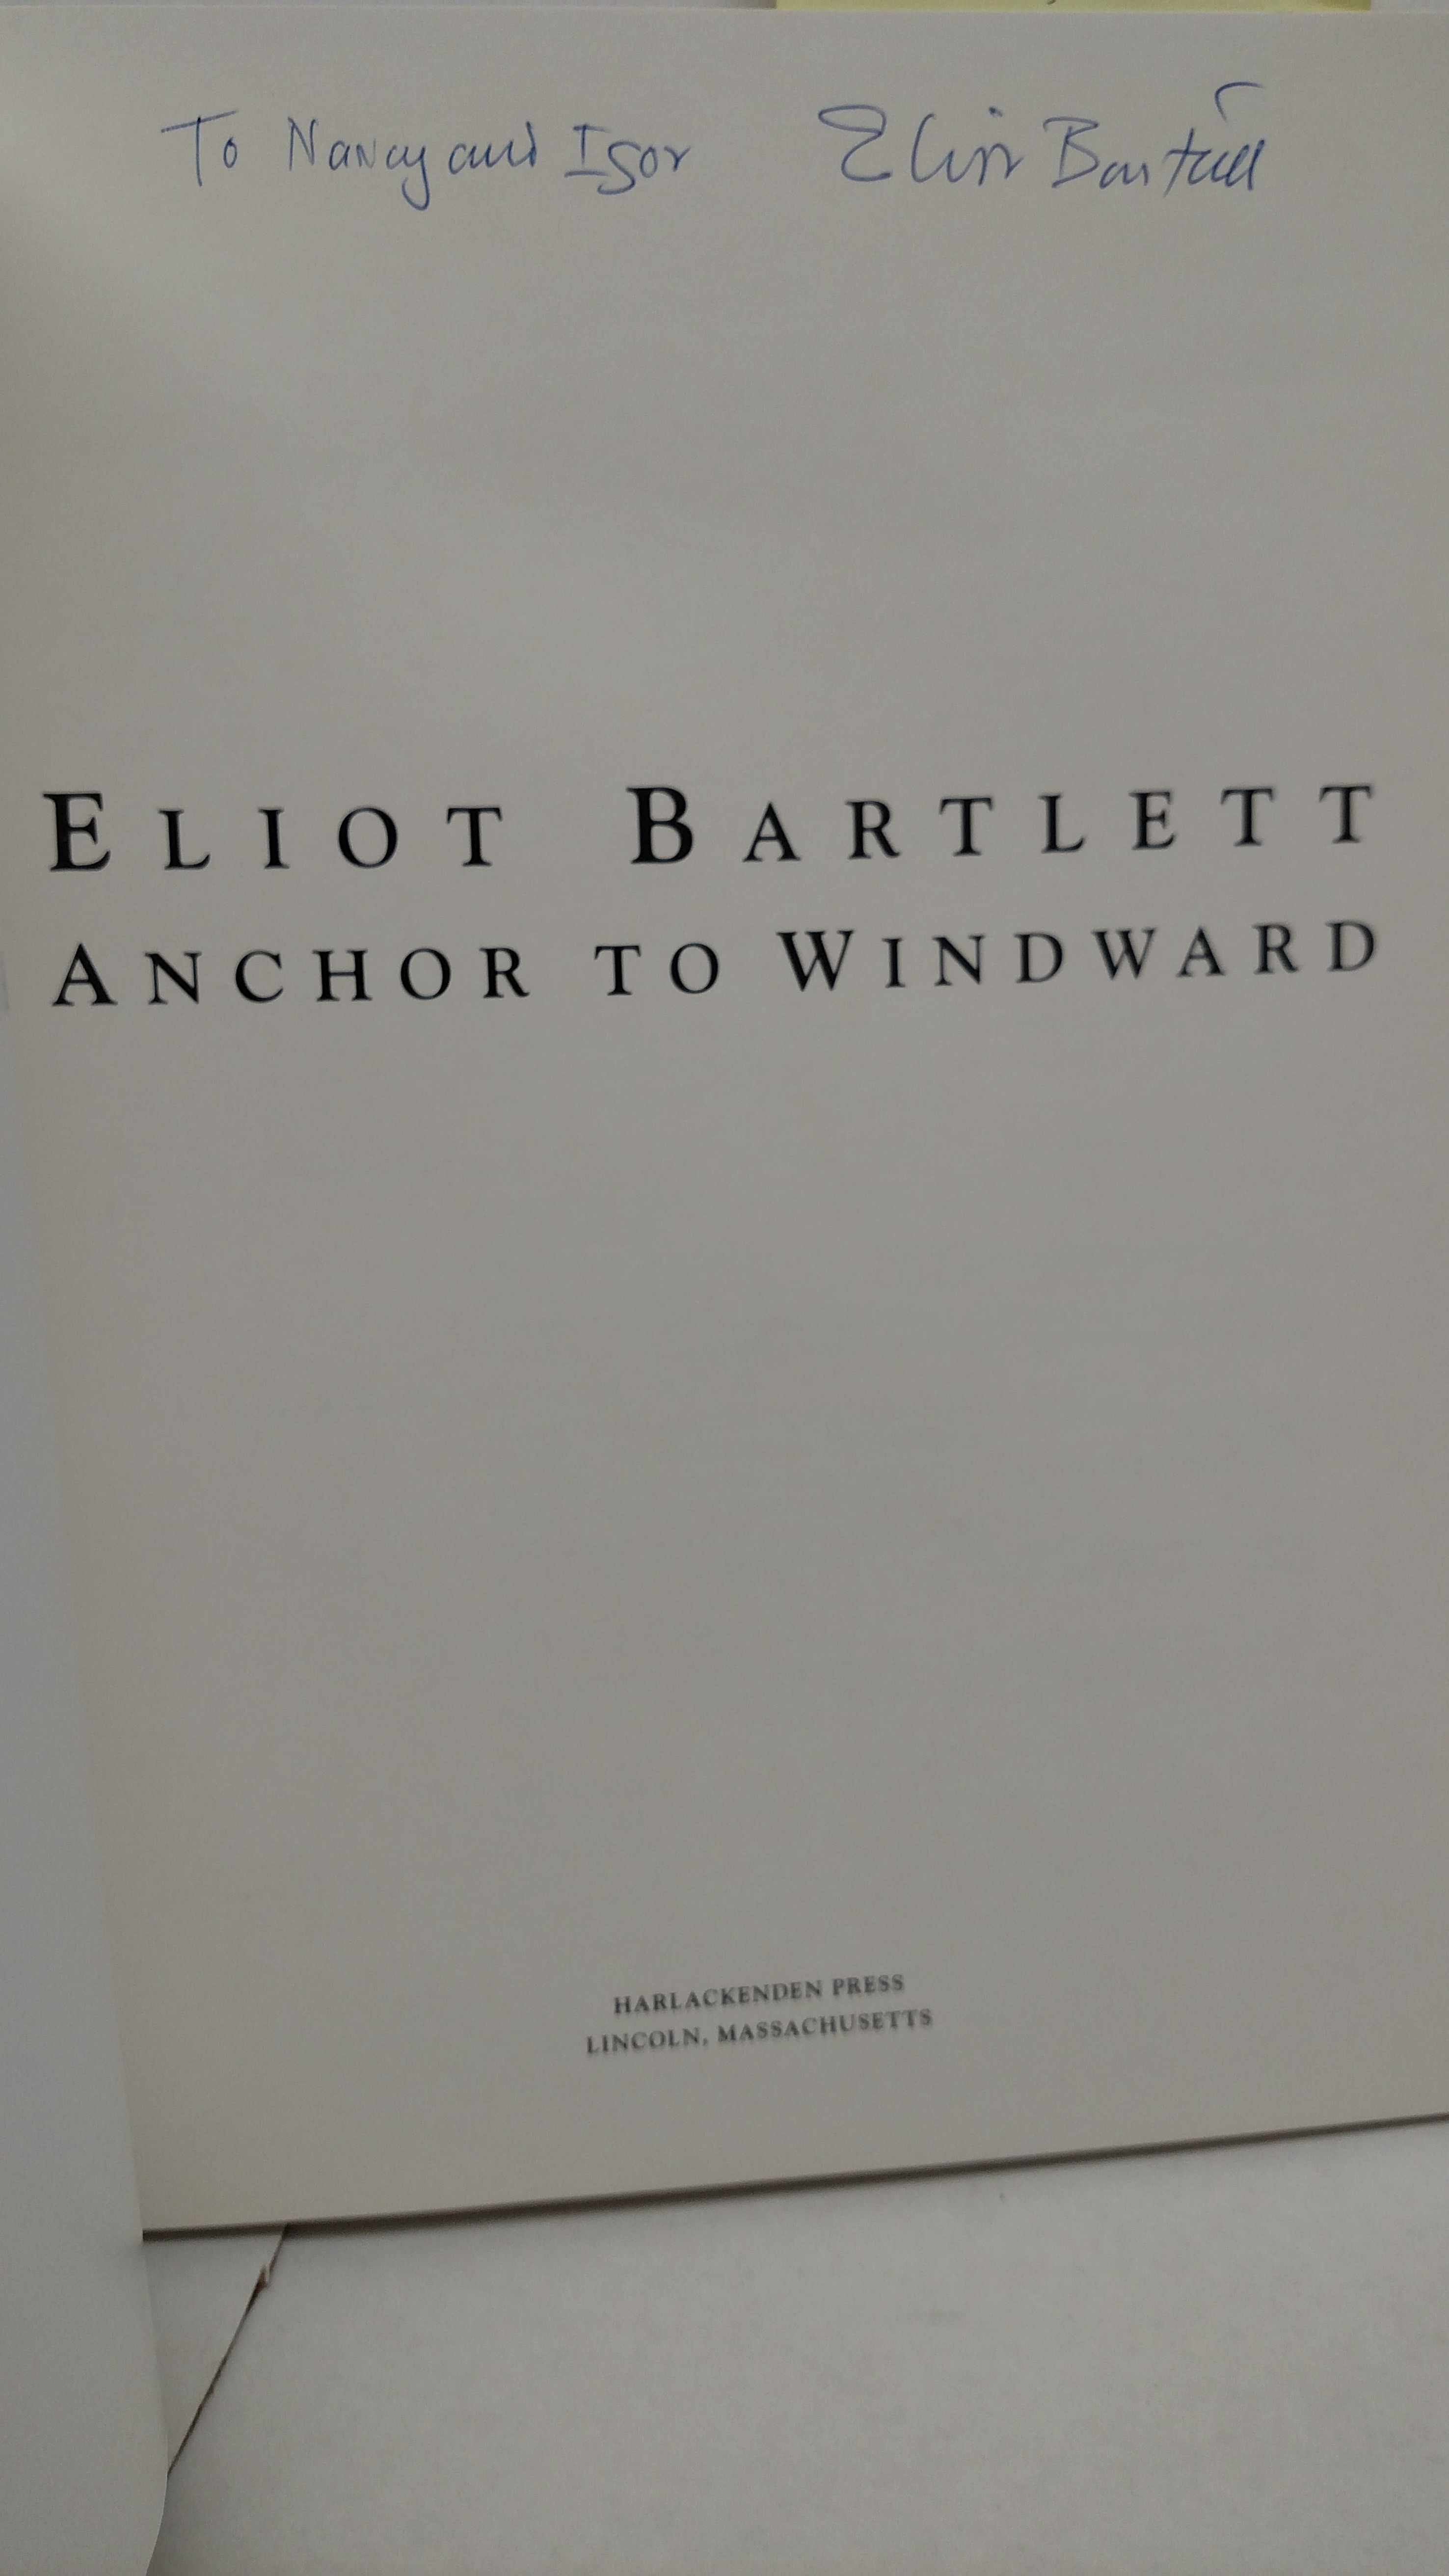 Image 1 of Eliot Bartlett:  Anchor to Windward